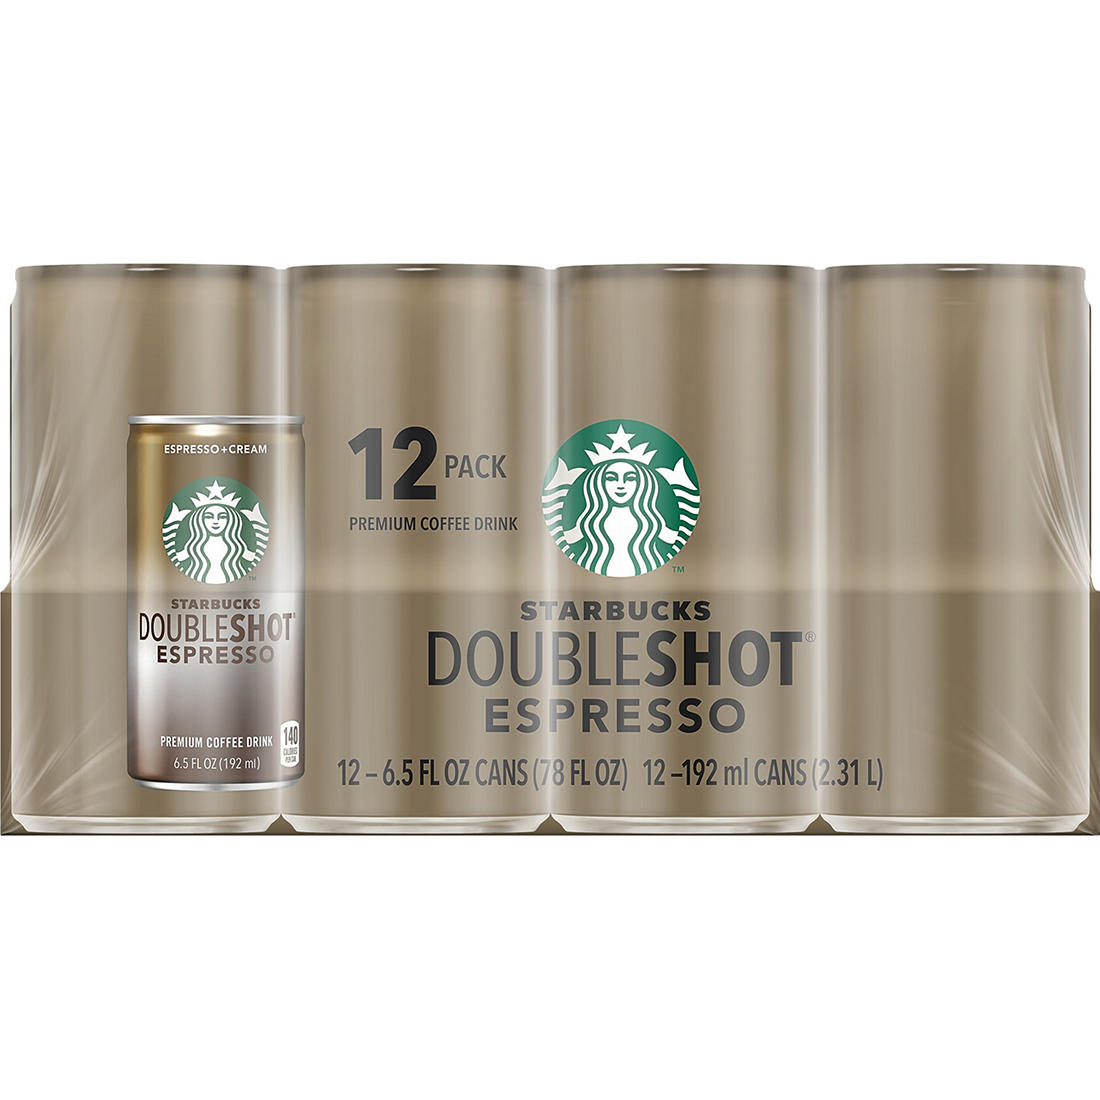 Starbucks Doubleshot Espresso Coffee 12 Pk Bjs Wholesale